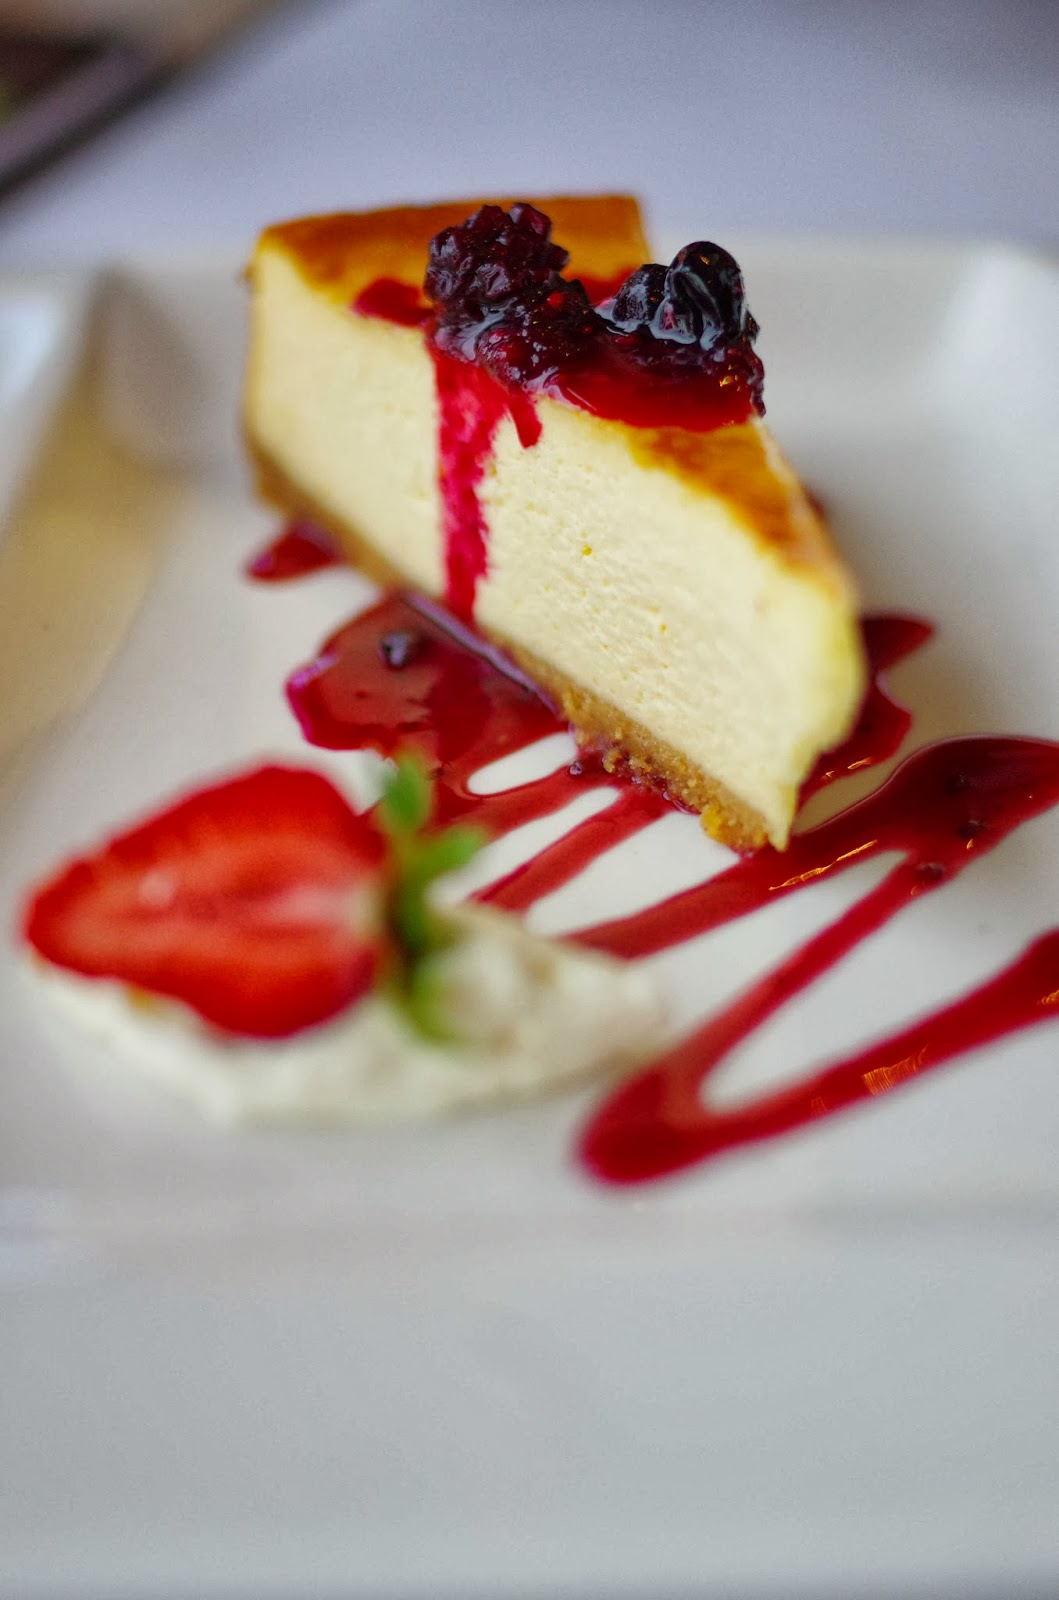 Cheesecake looks divine image